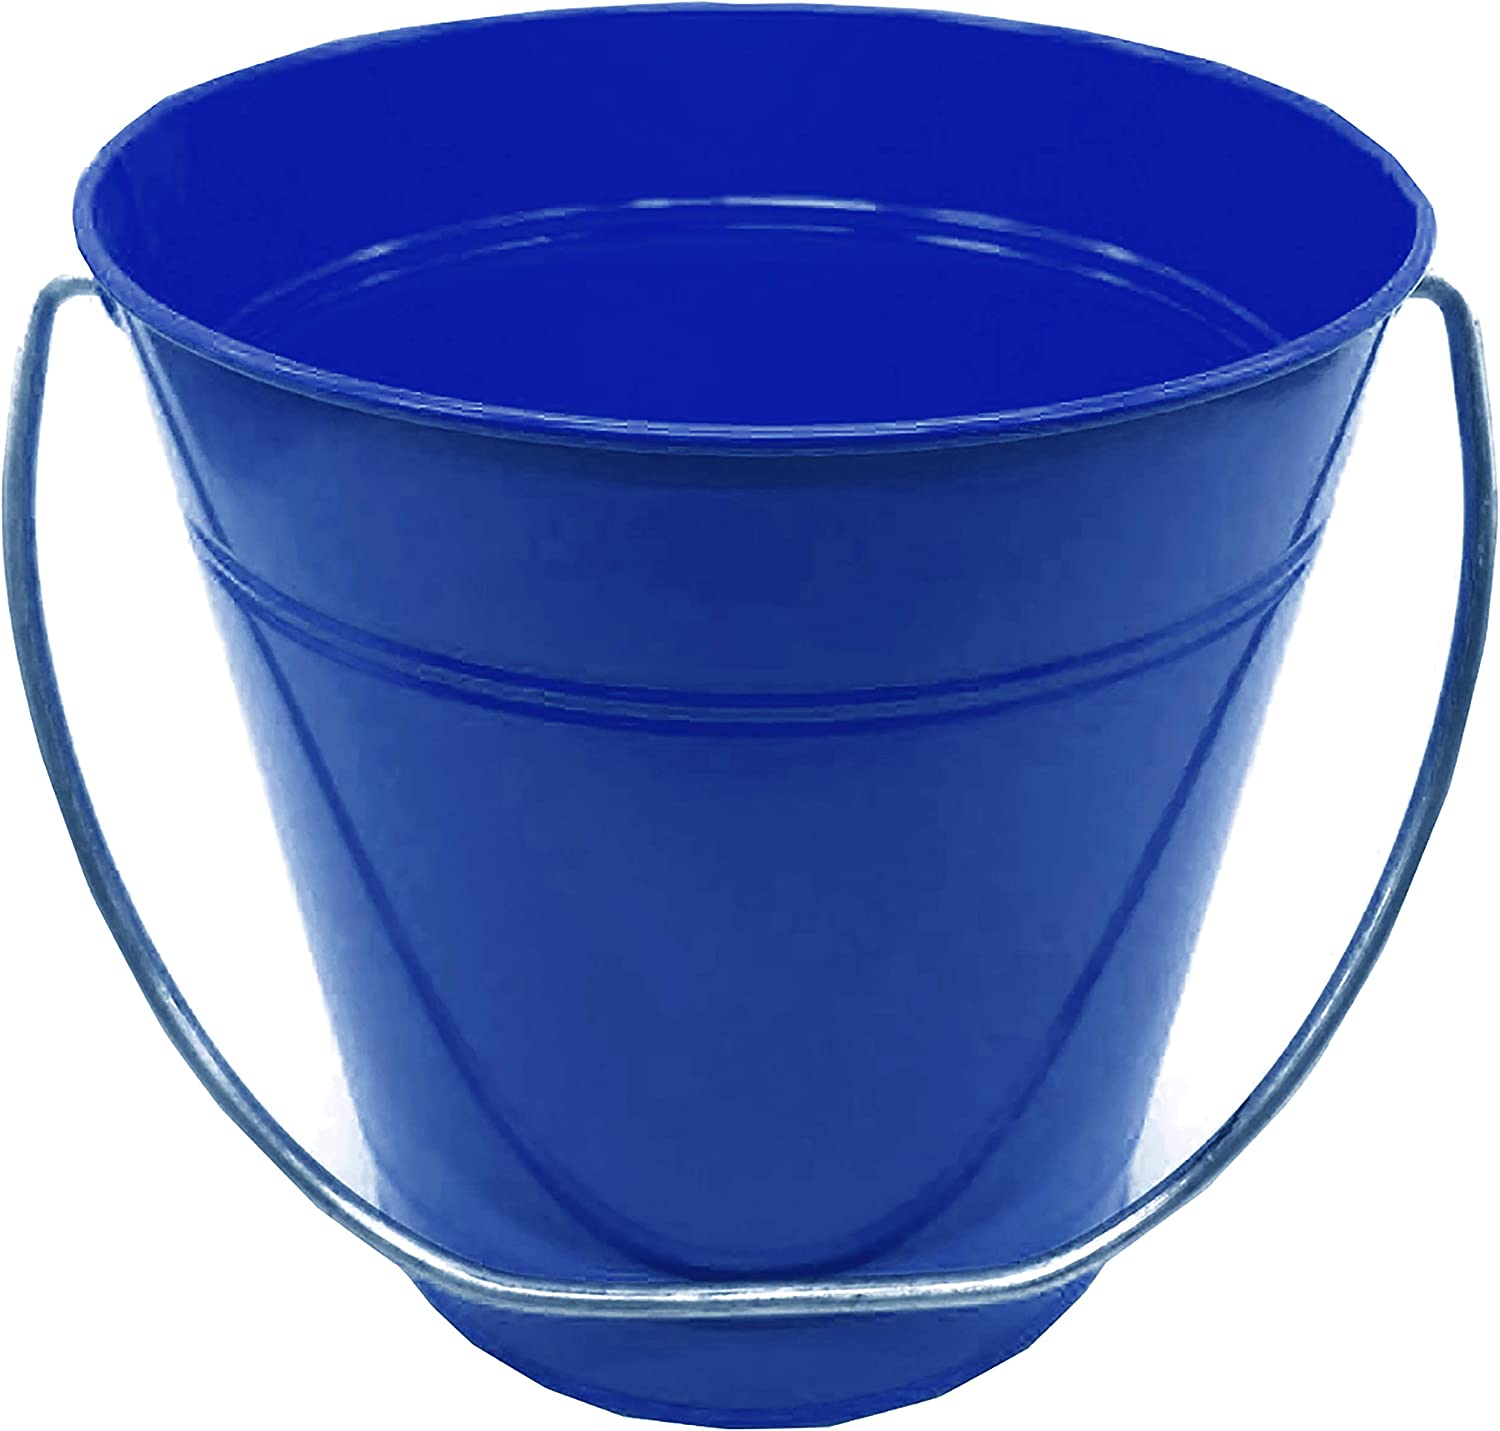 ITALIA 12 Pack Metal Bucket Party Favor Sizes 4.15x 5.31 12 Pack